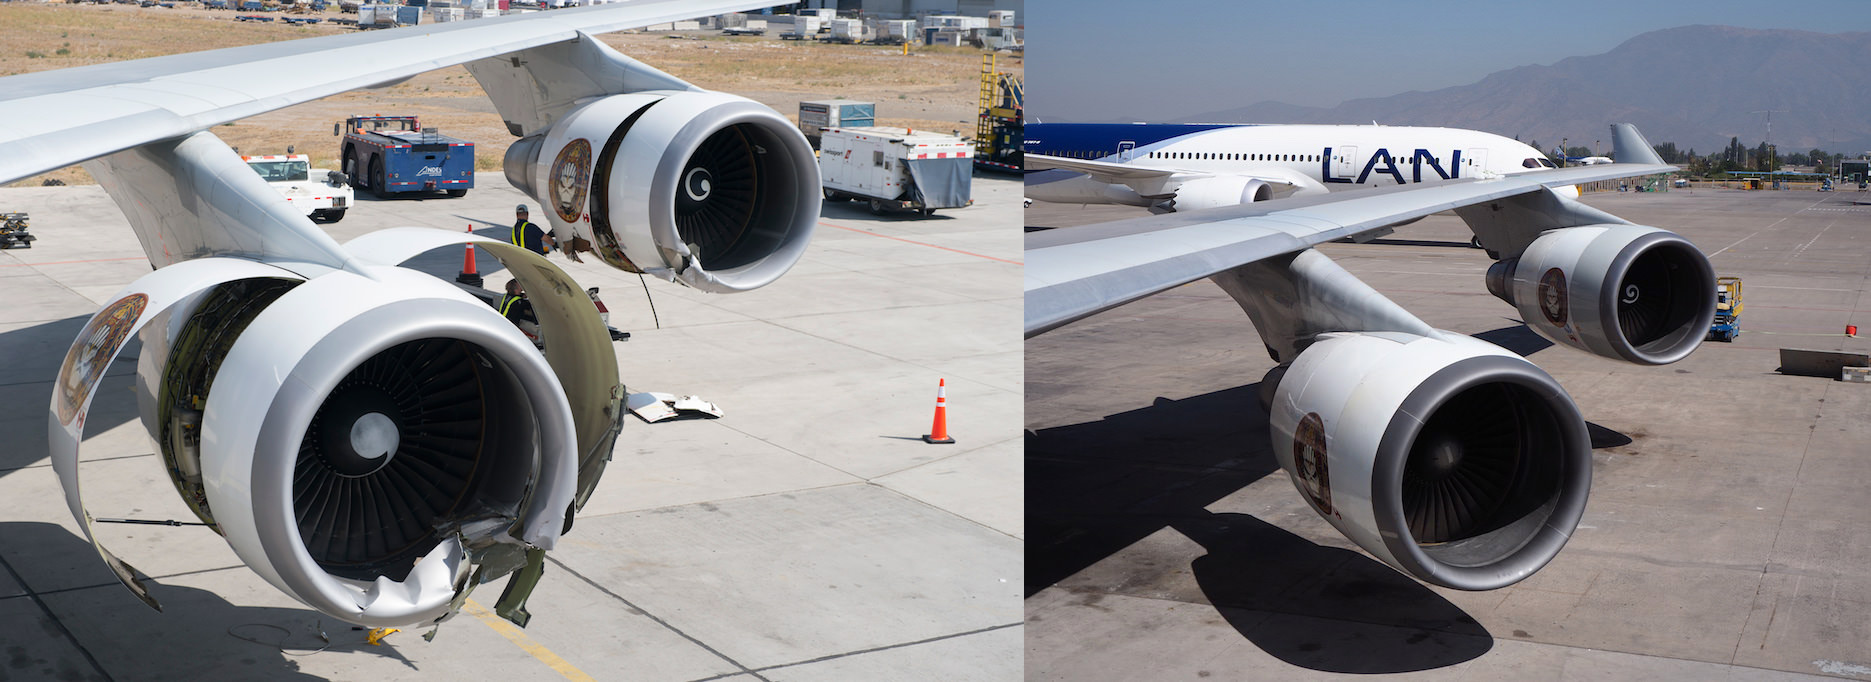 A look at Ed Force One before and after replacing the port-side engines.